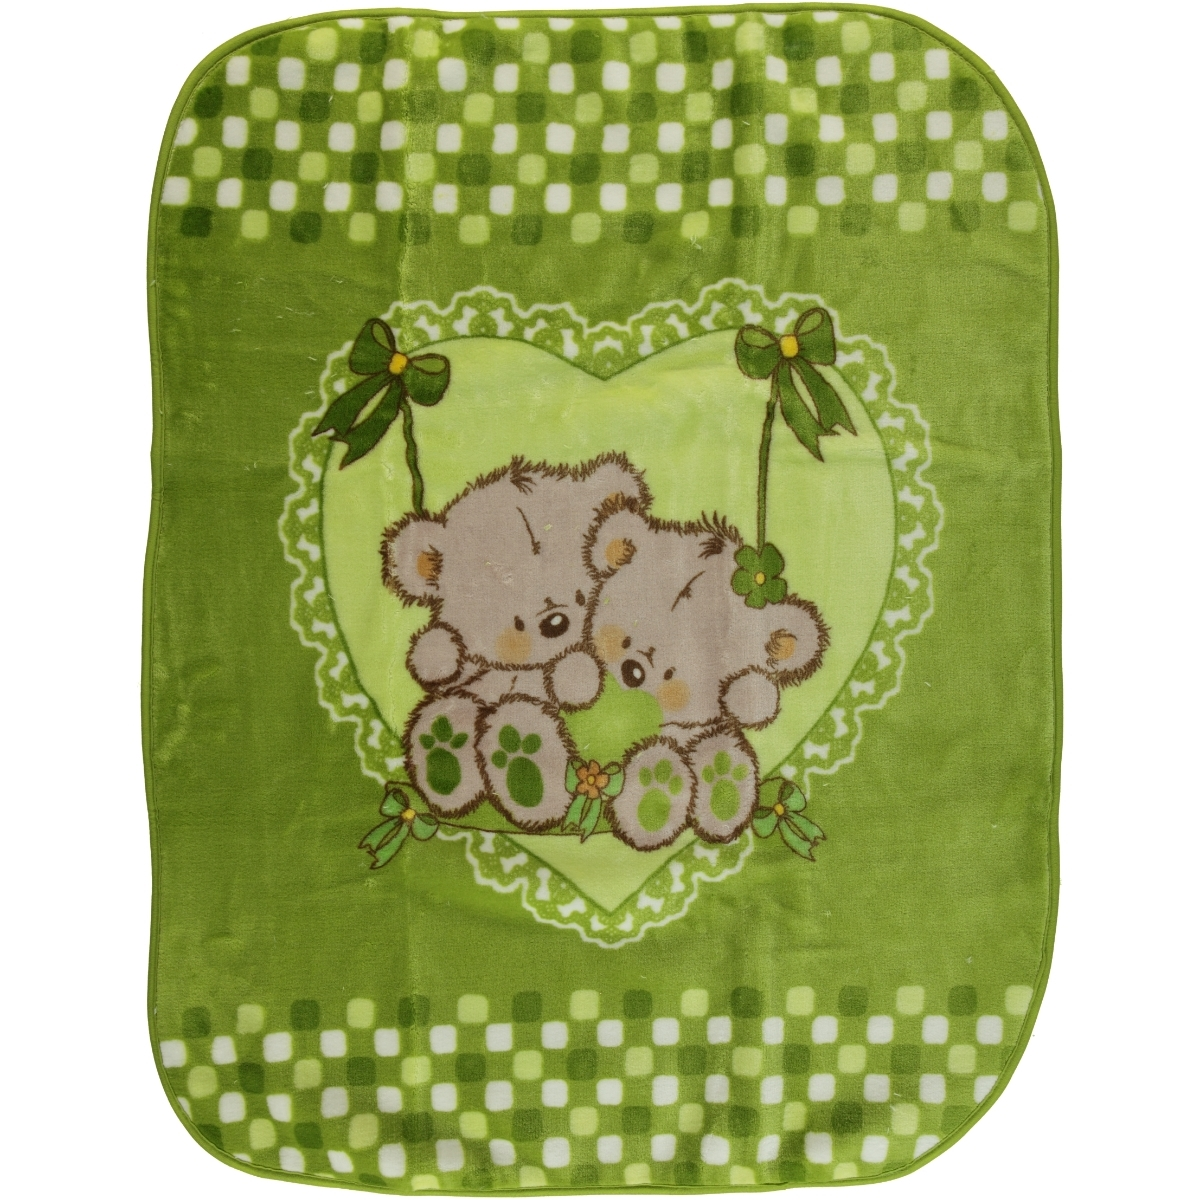 Recos Yesil cm plush Blanket will be installed